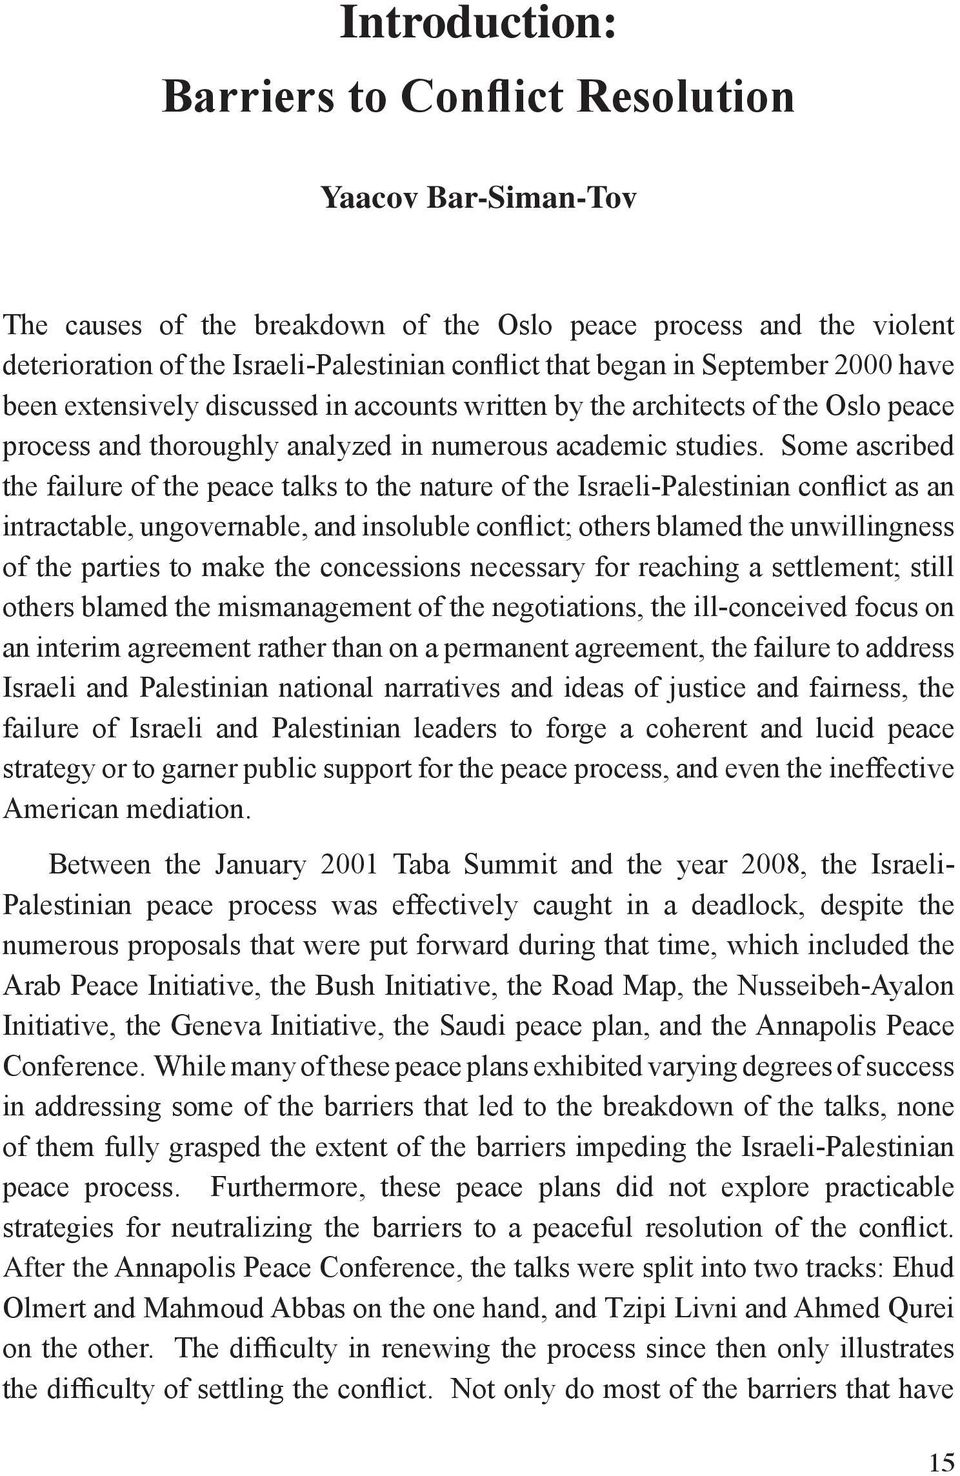 Some ascribed the failure of the peace talks to the nature of the Israeli-Palestinian conflict as an intractable, ungovernable, and insoluble conflict; others blamed the unwillingness of the parties